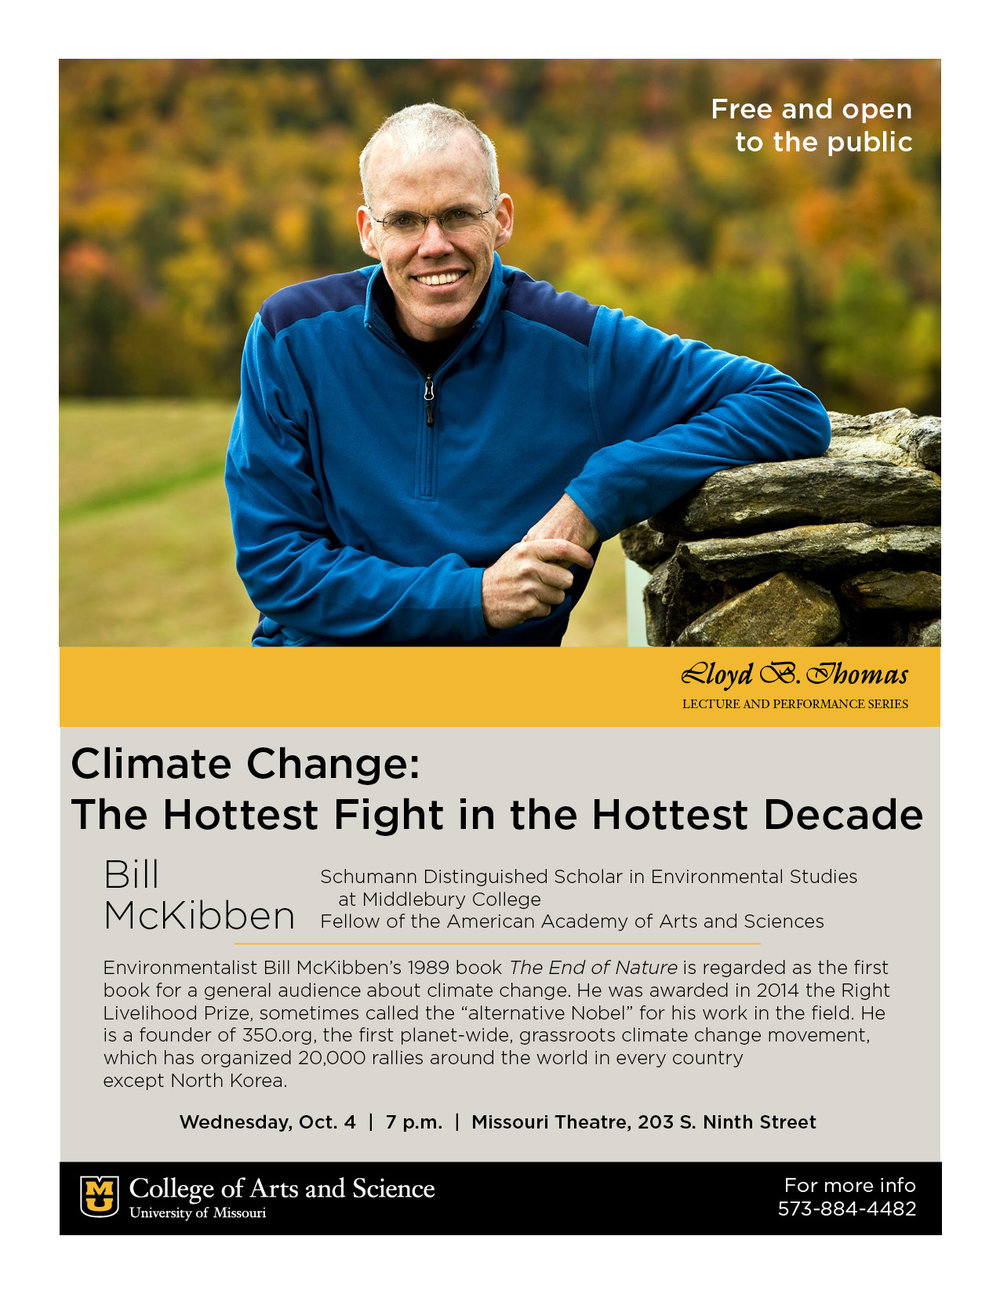 McKibben flyer update.jpg